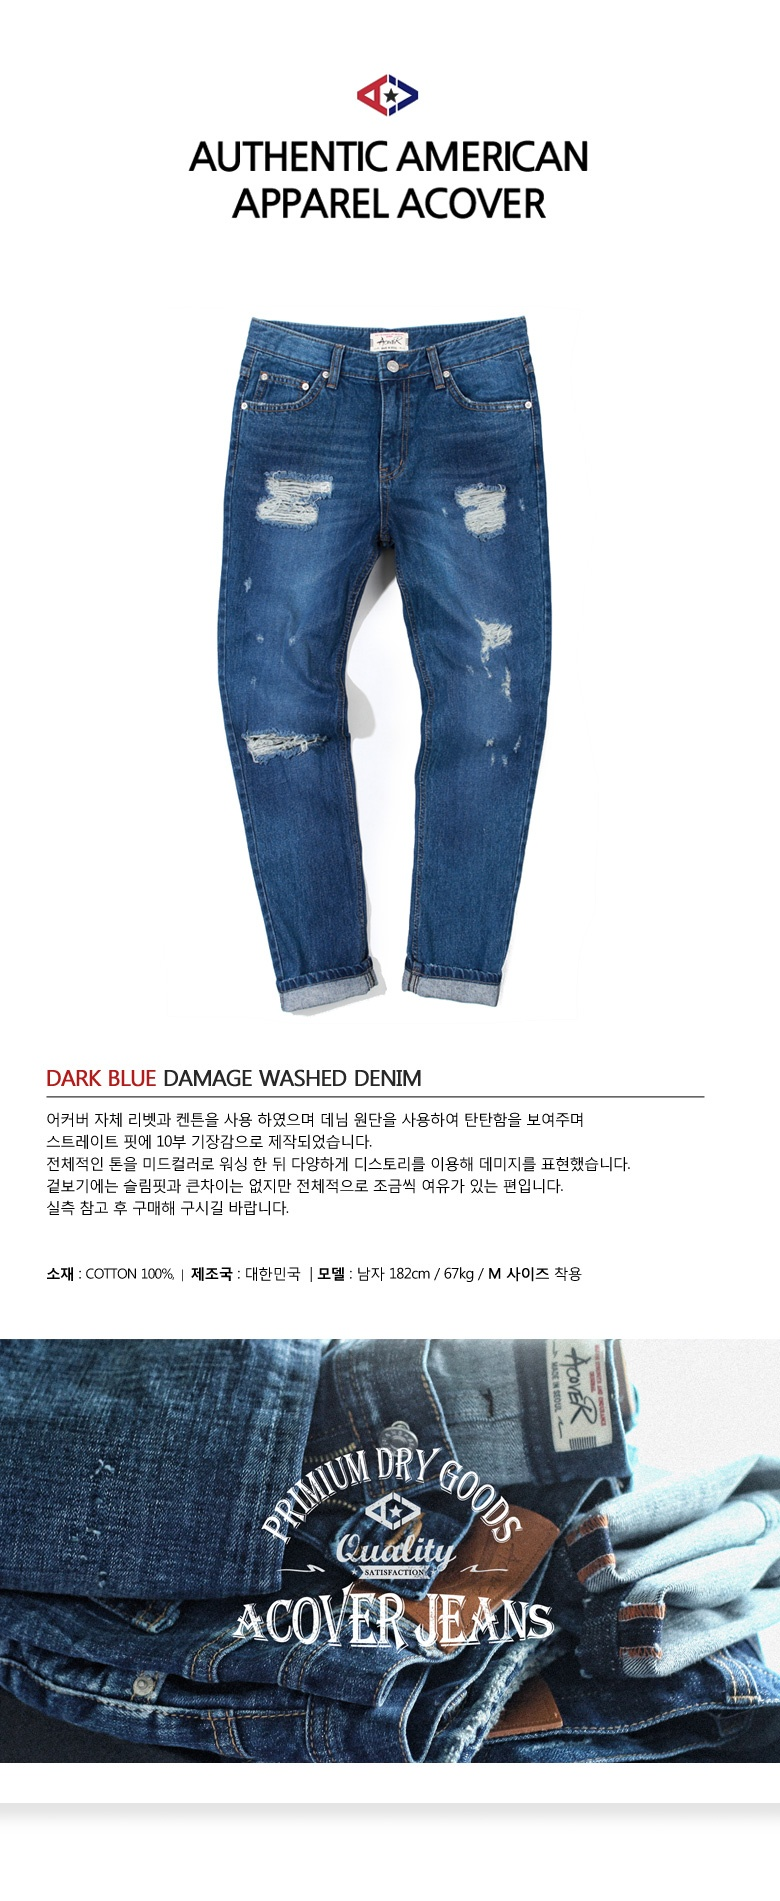 Dark Blue Damage Washed Denim.jpg